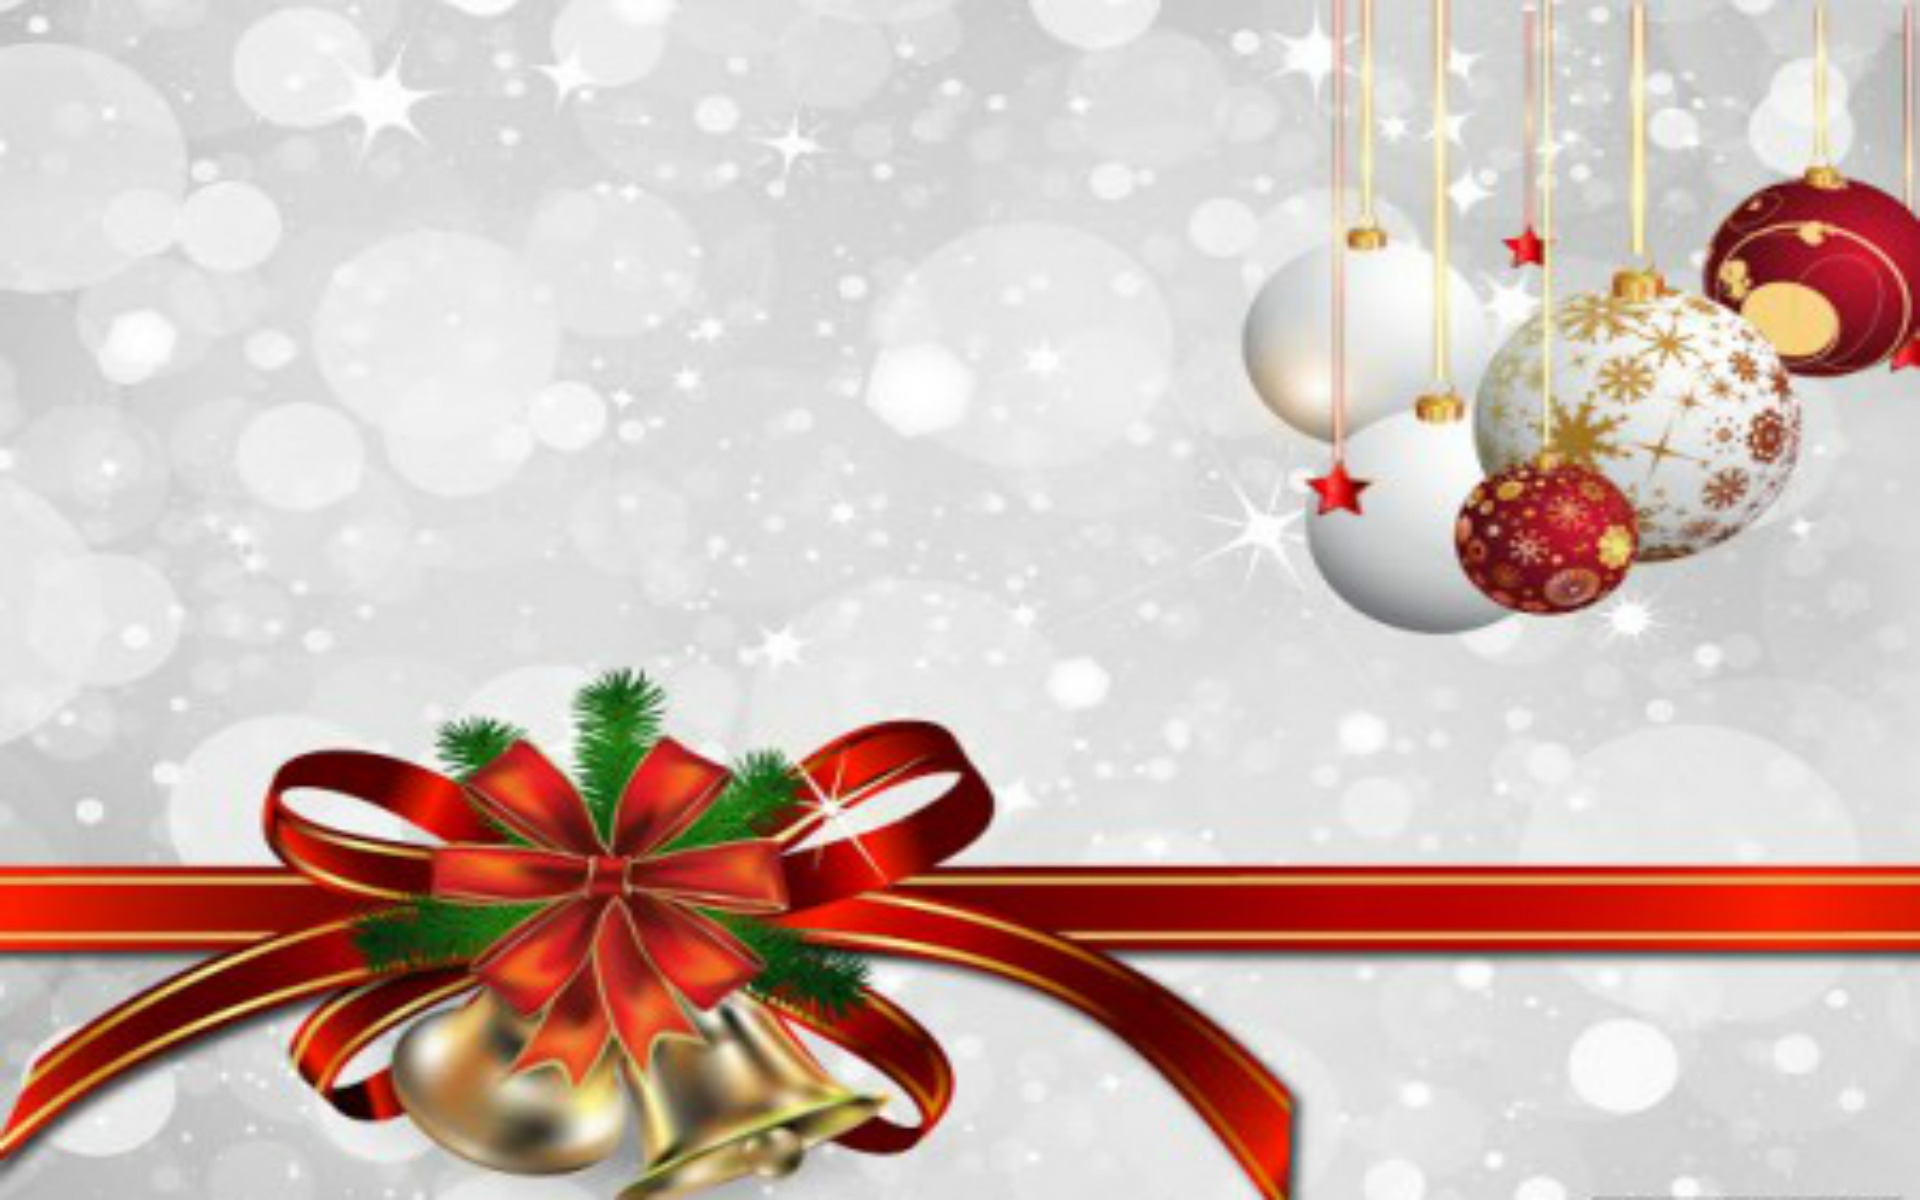 Free Christmas Wallpapers Backgrounds